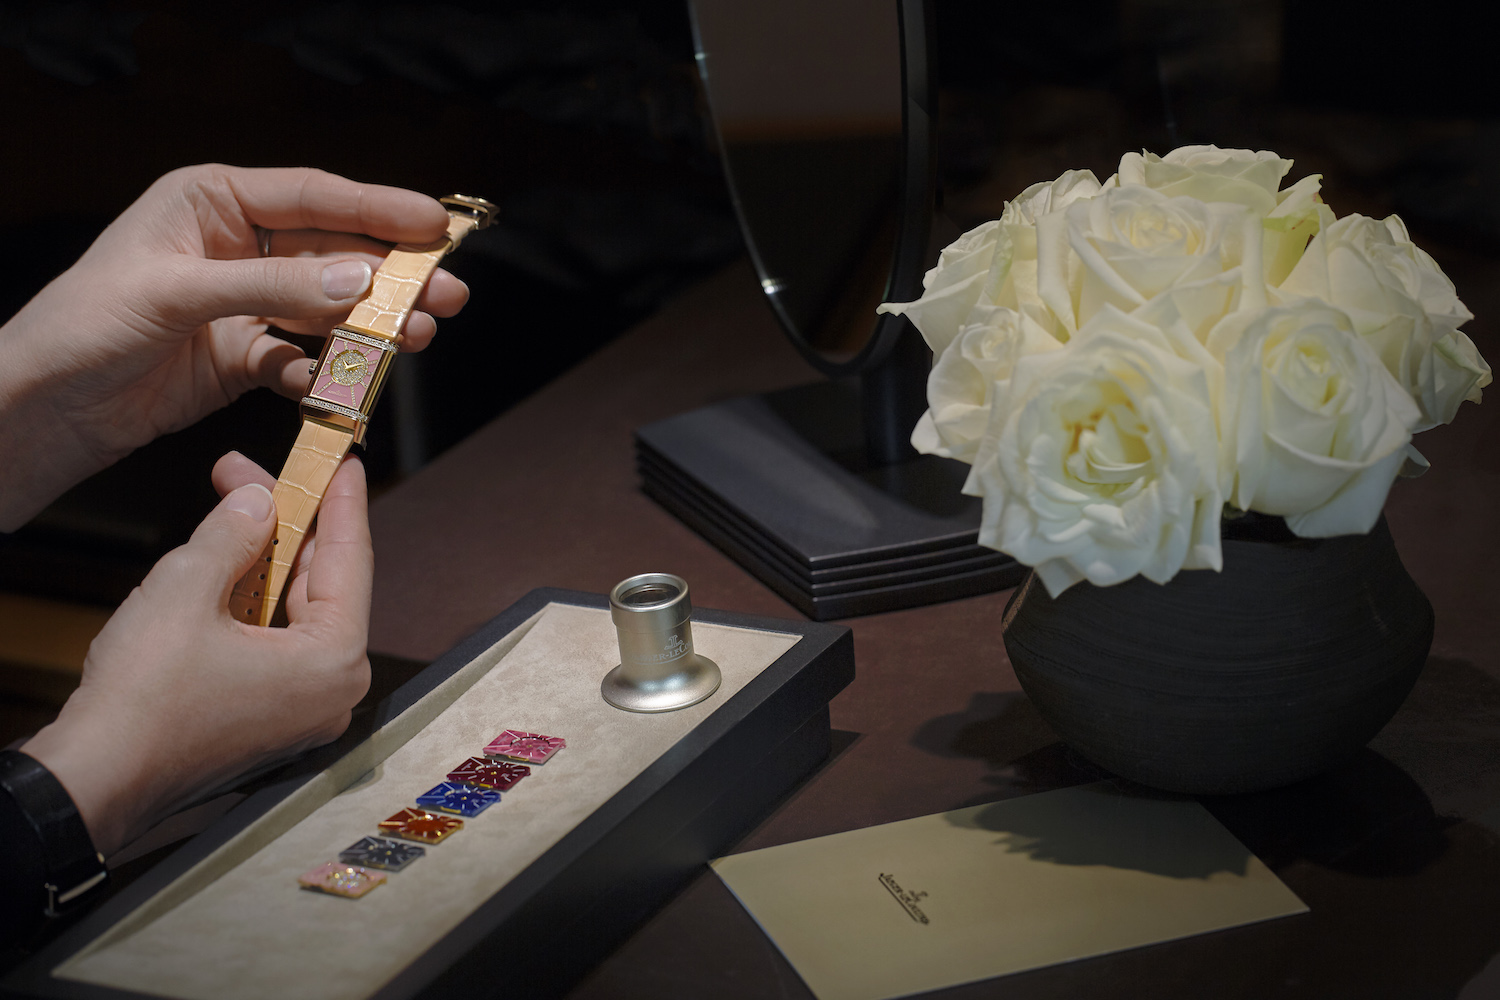 jaeger-lecoultre-presents-atelier-reverso-in-the-boutiques_photo-johann-sauty